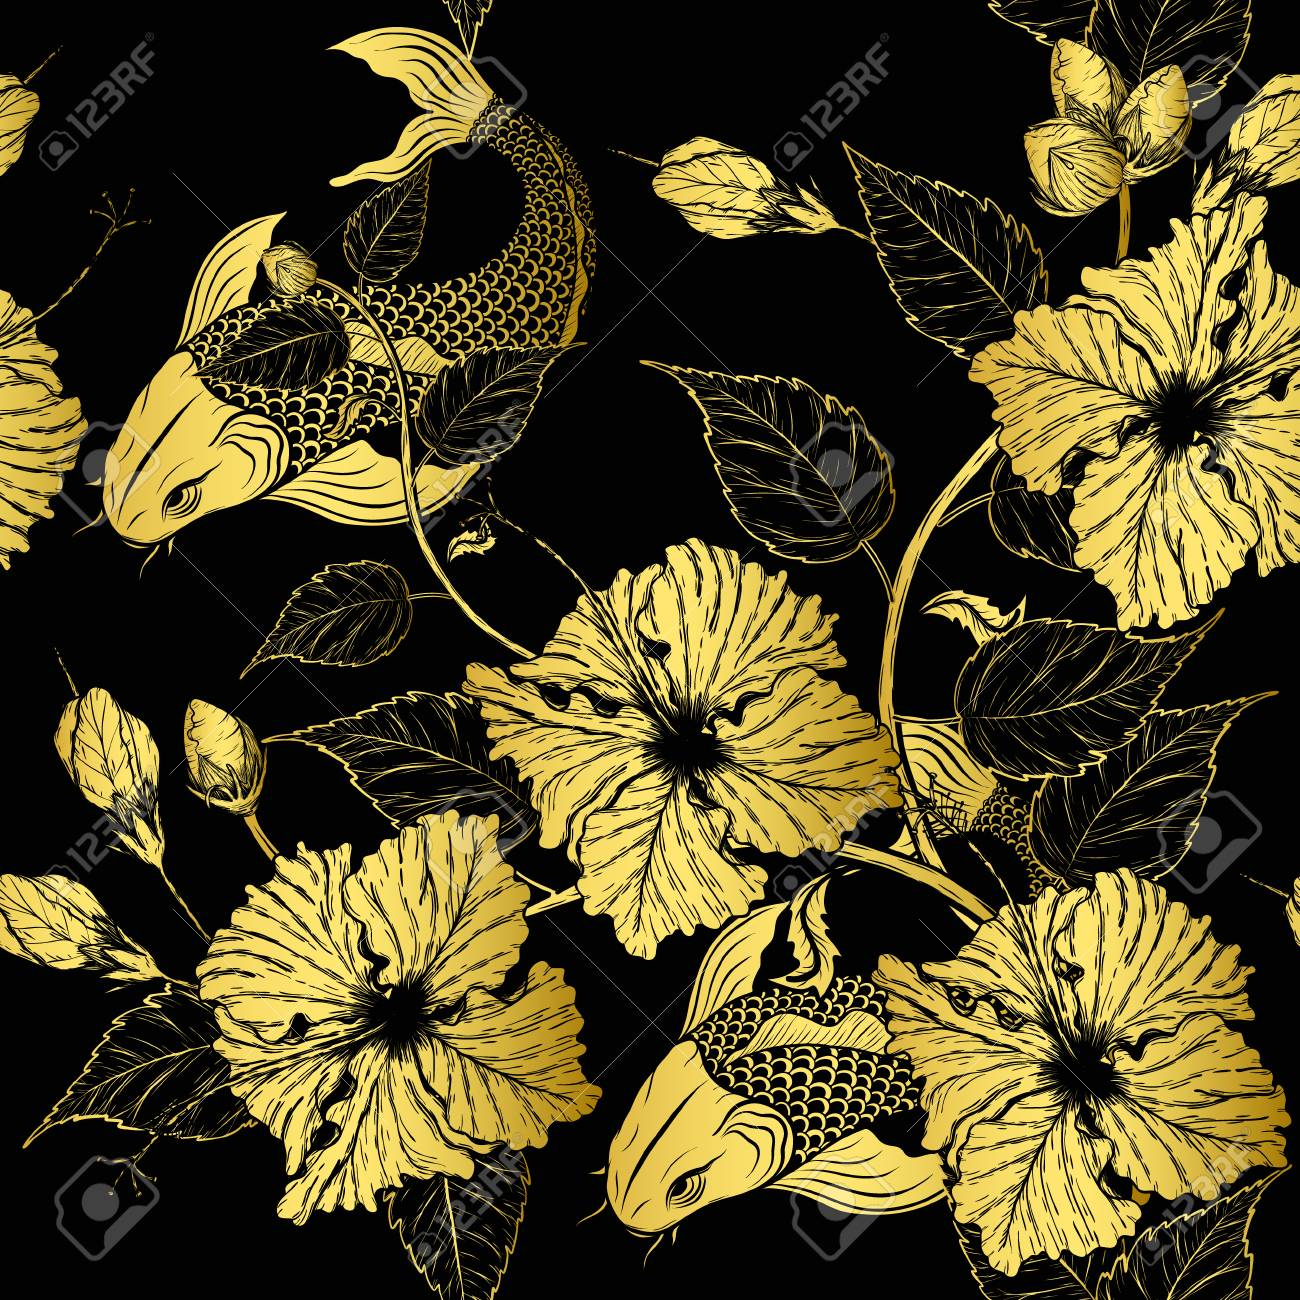 Hibiscus Flower Pattern By Hand Drawing Tattoo Art Highly Detailed Royalty Free Cliparts Vectors And Stock Illustration Image 96658988